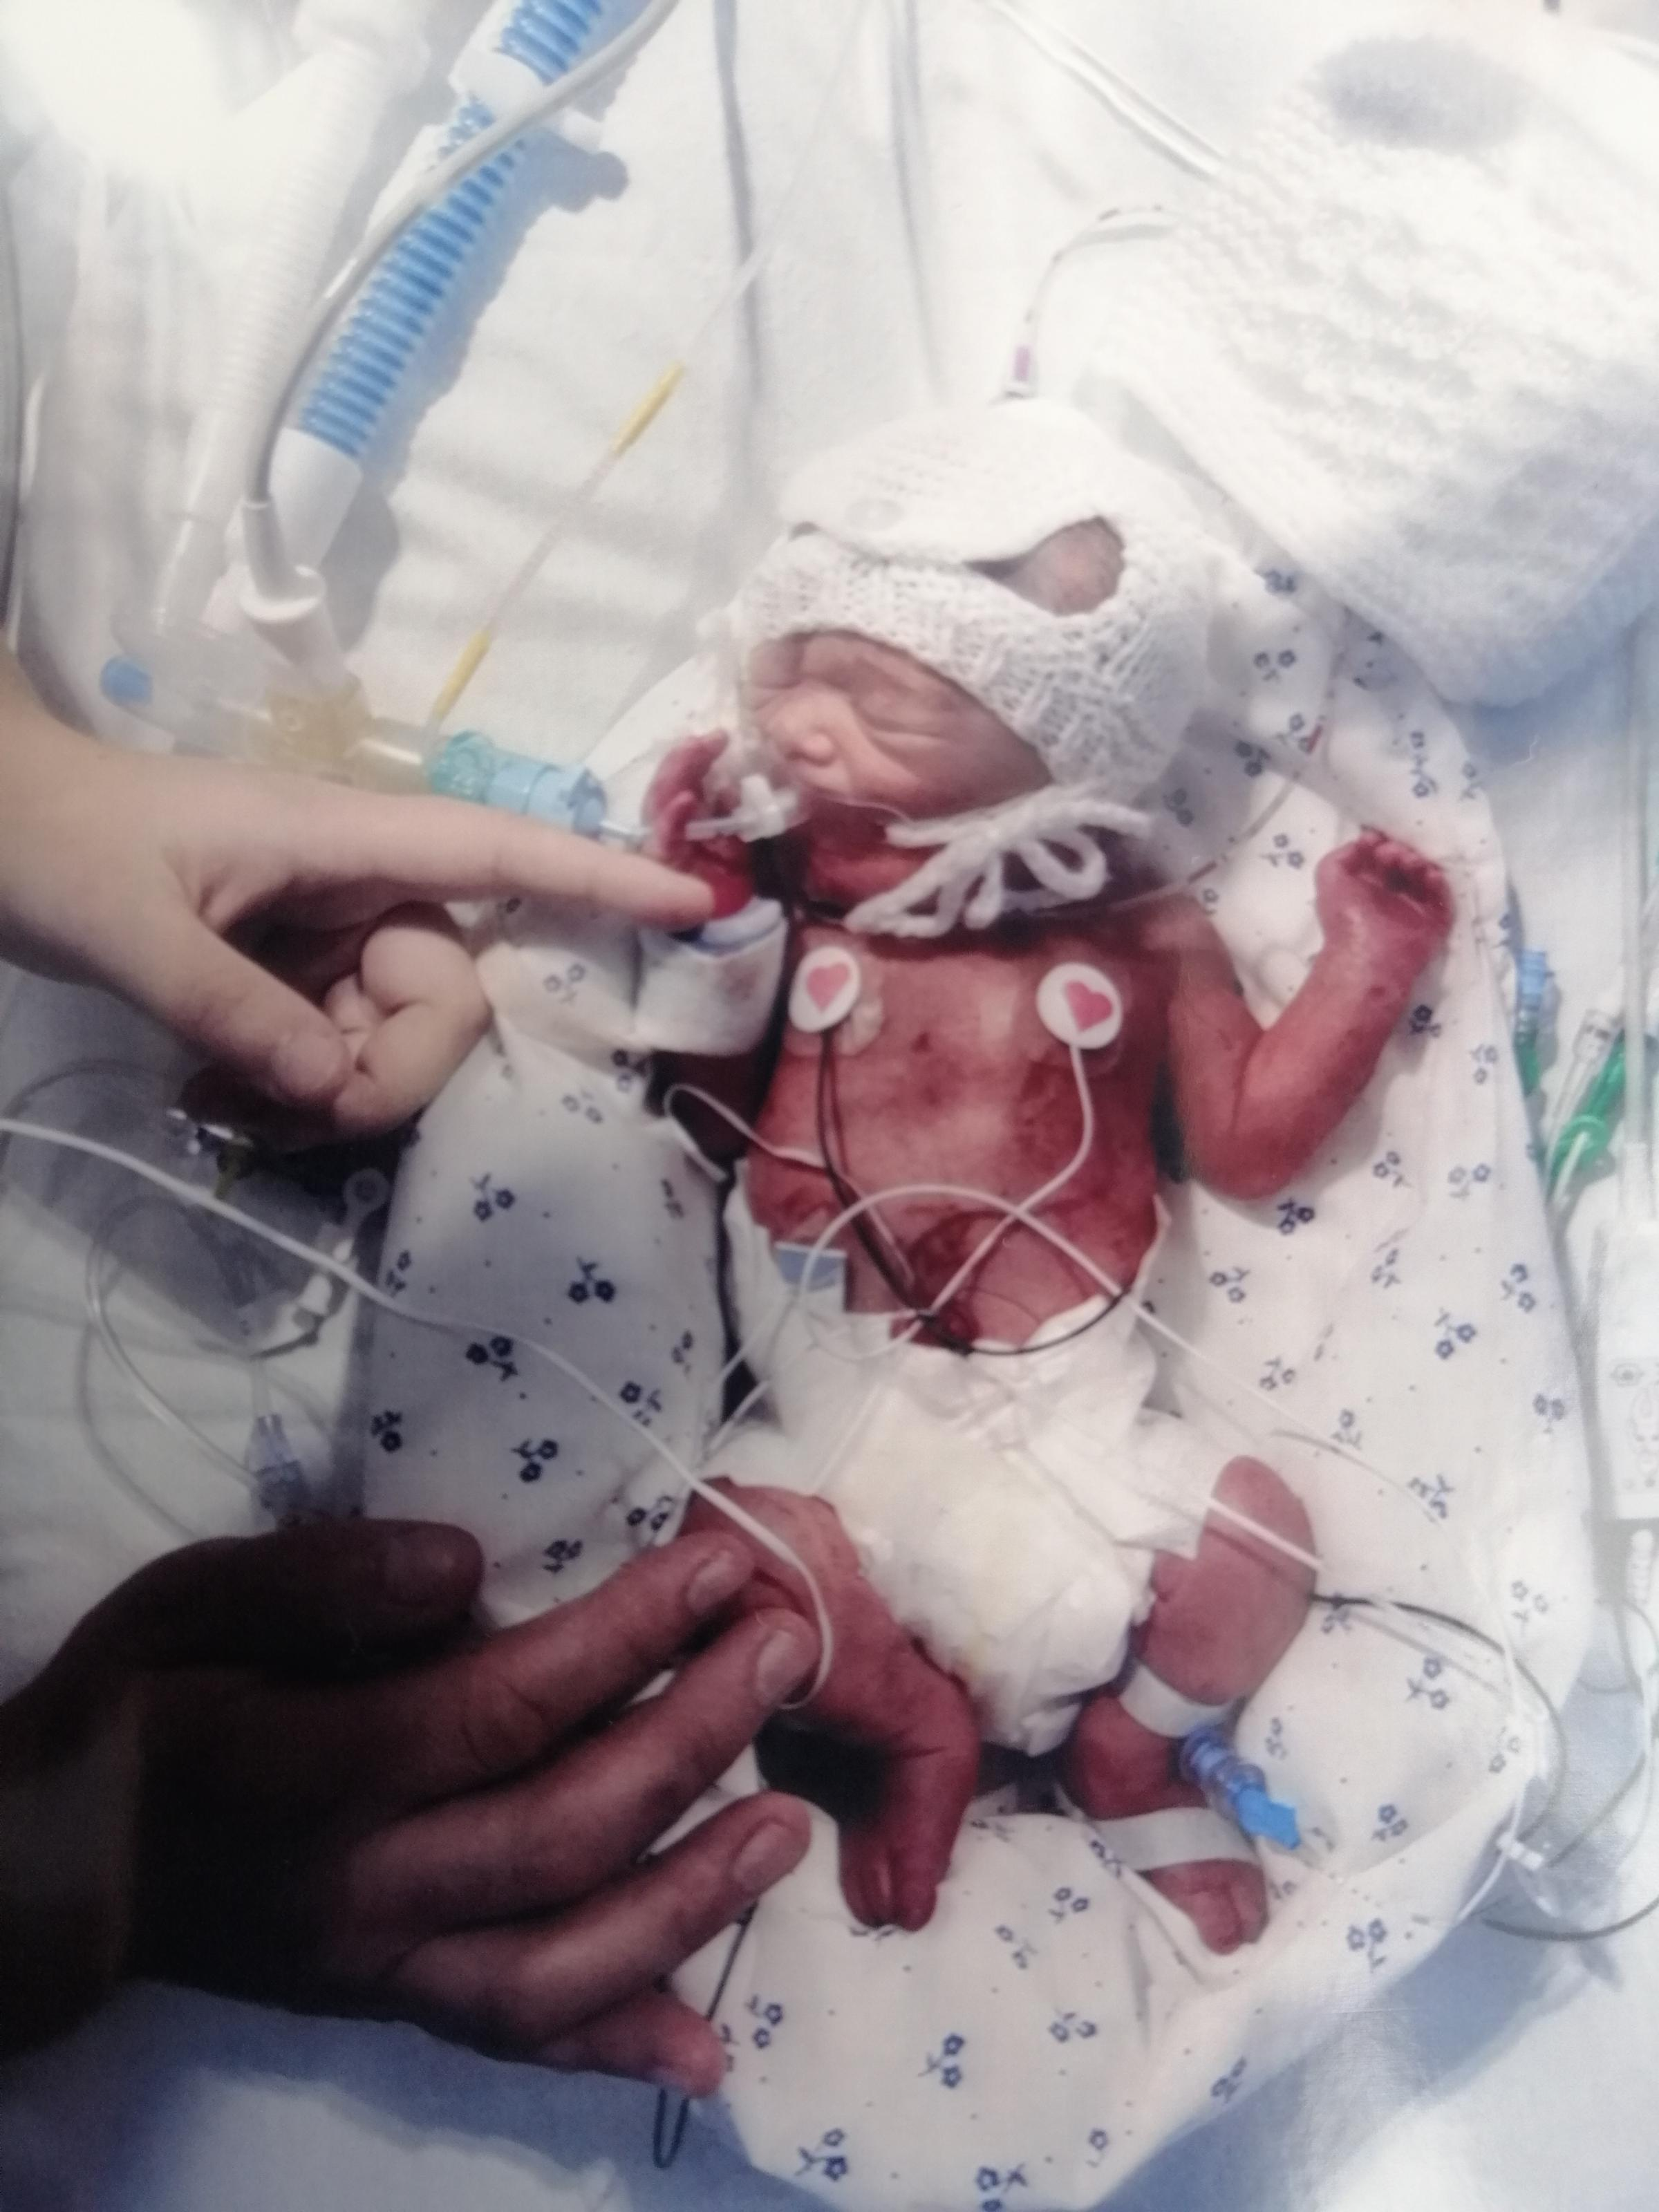 St Helens Star: Alexander Phillip taylorSt HelensBorn 27th August 2020Weighing 3lb 4Alexander was born 12 weeks premature and is still in scbu at whiston